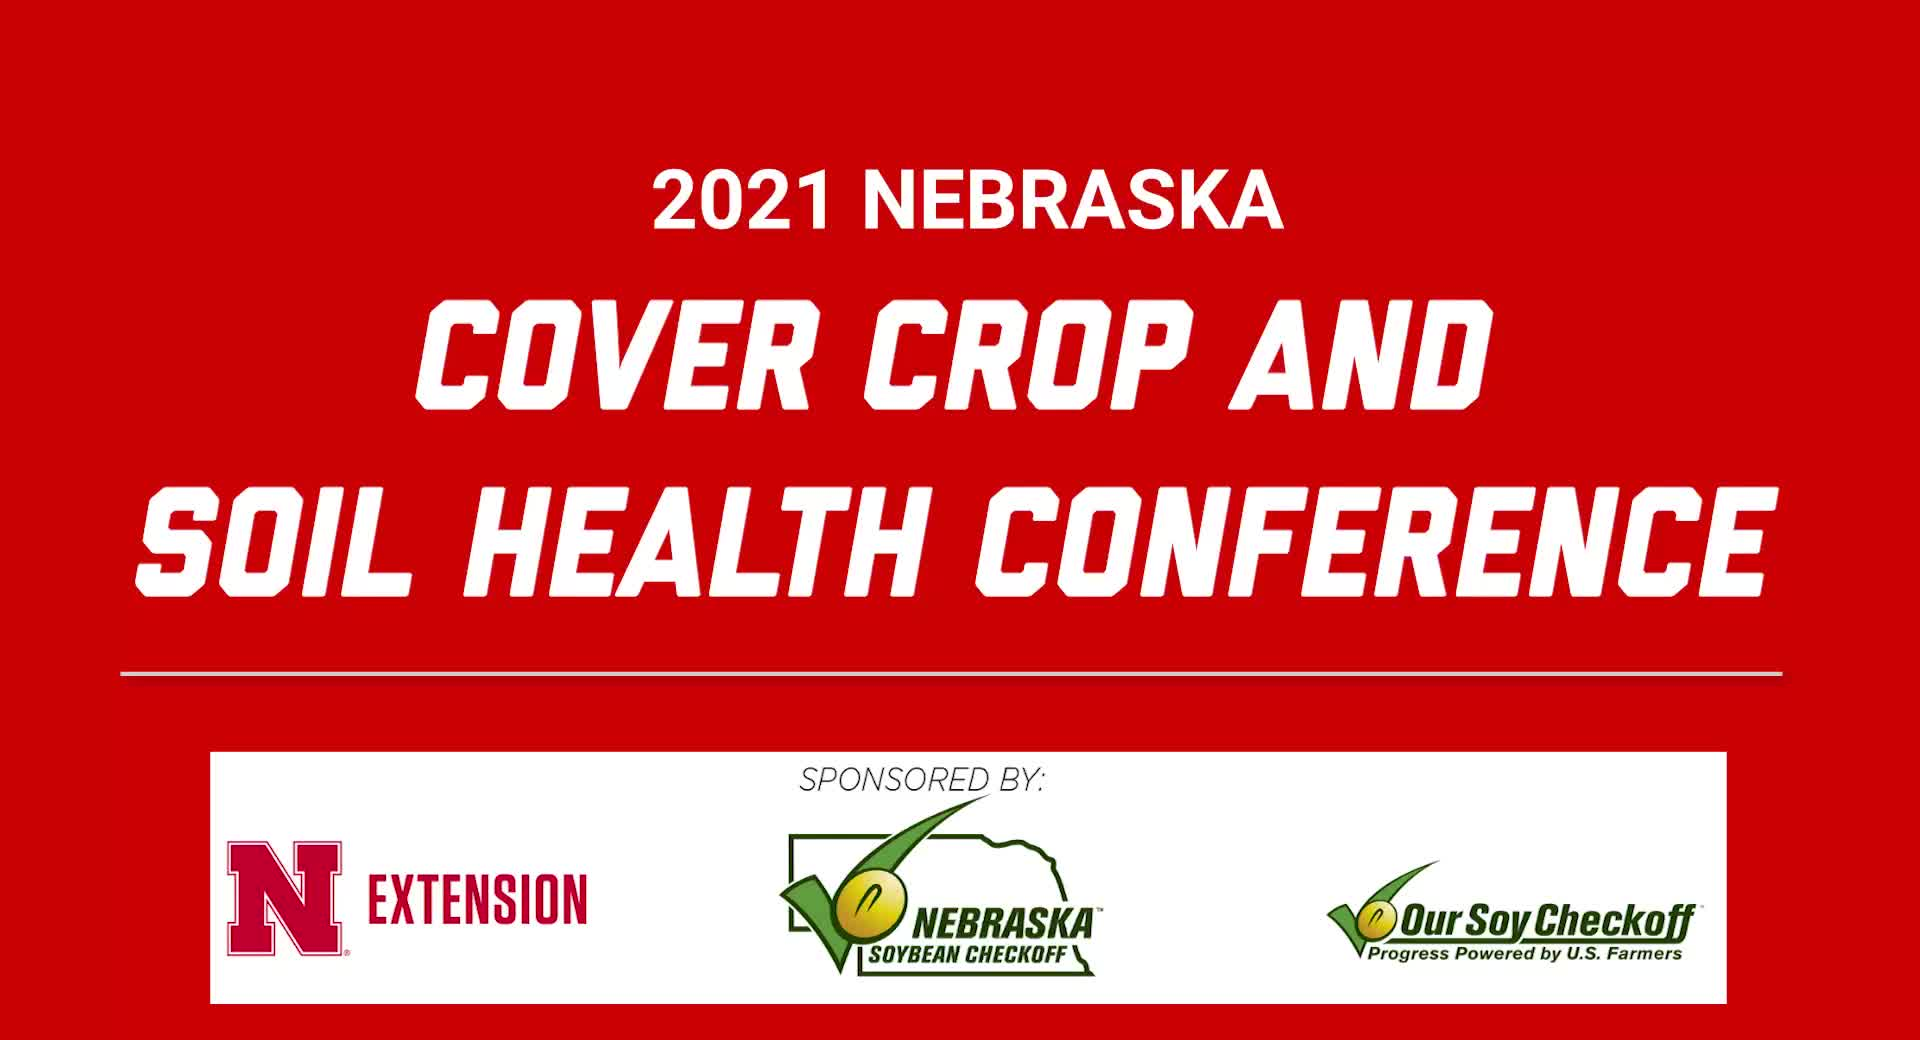 2021 Nebraska Cover Crop and Soil Health Conference - Introduction